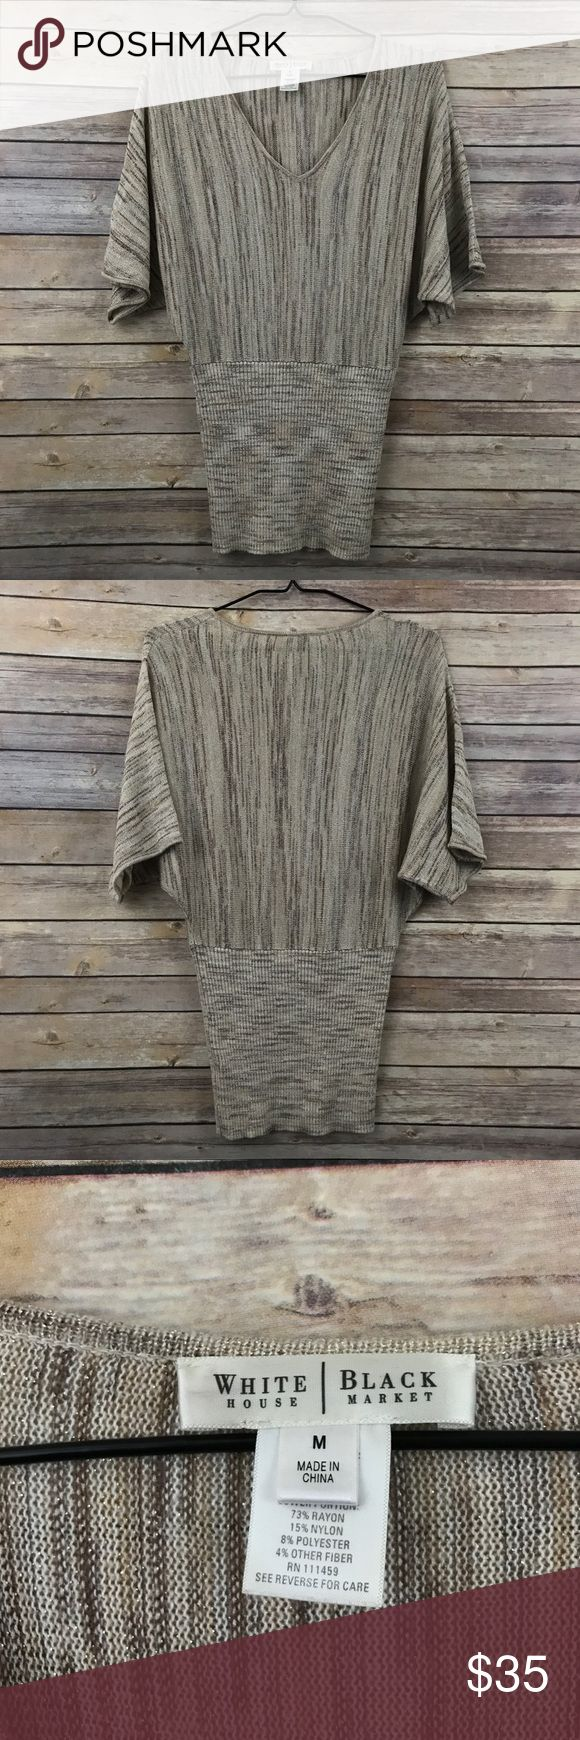 """WHBM Short Sleeve dolman sweater tan gold Sz M 459 This White House Black Market short sleeve dolman sleeve sweater has a banded bottom and is a tan, cream and gold metallic stripe/marled look sweater in a women's size Medium. It measures 16""""-18"""" flat across the bust unstretched and is 28"""" long. In good preowned condition with no known flaws and light overall wear. White House Black Market Sweaters V-Necks"""